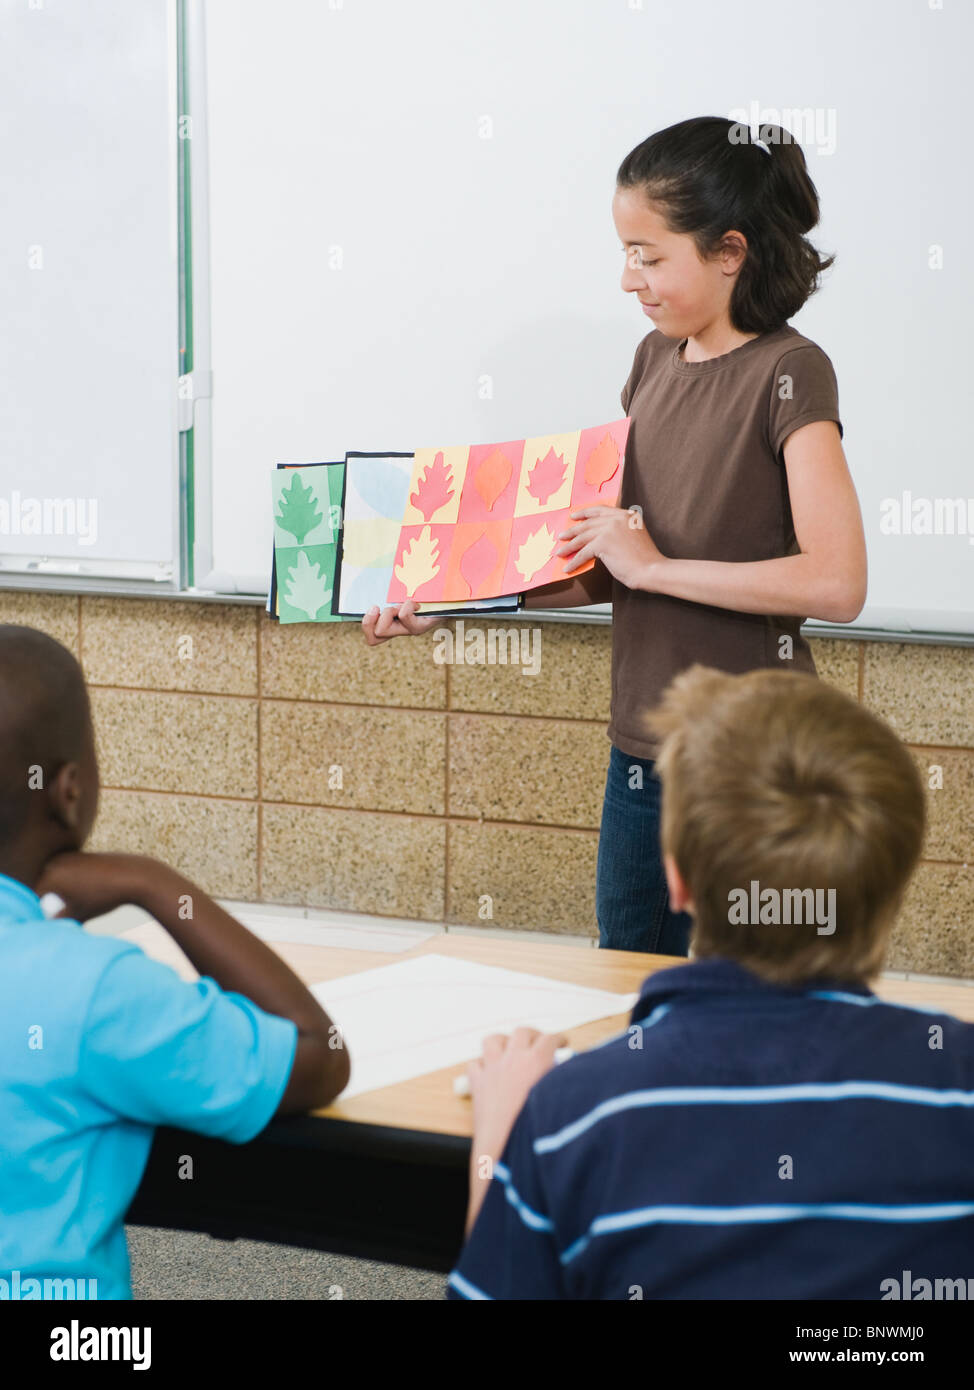 Elementary student giving class presentation - Stock Image